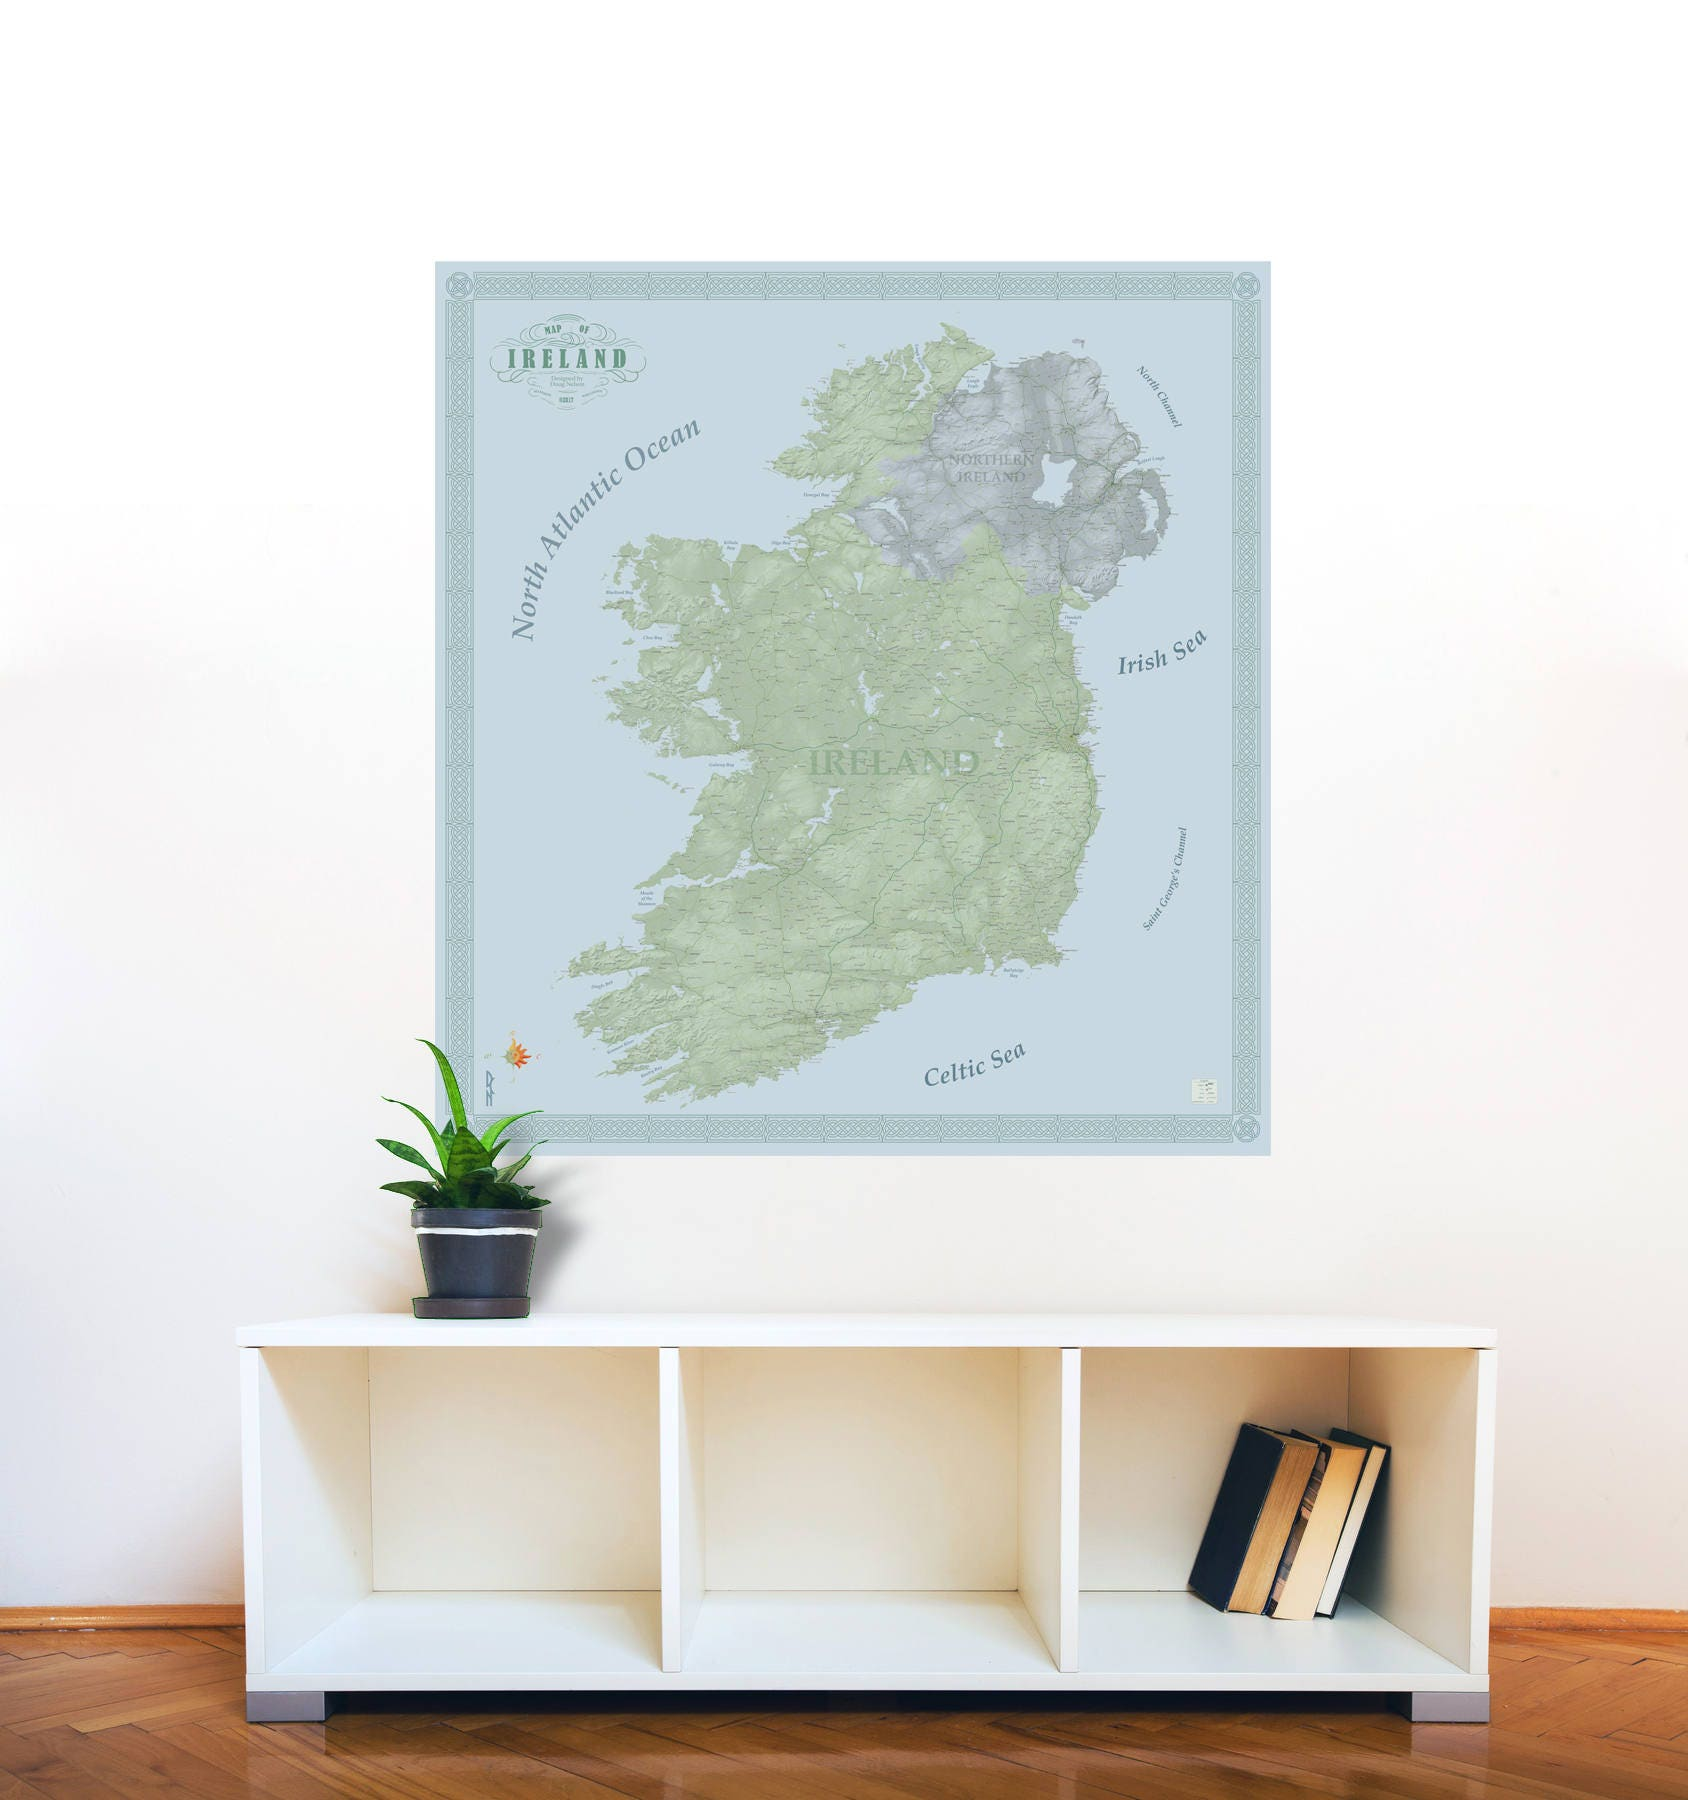 Large print ireland wall map decal 24x24 wall map sticker map of ireland